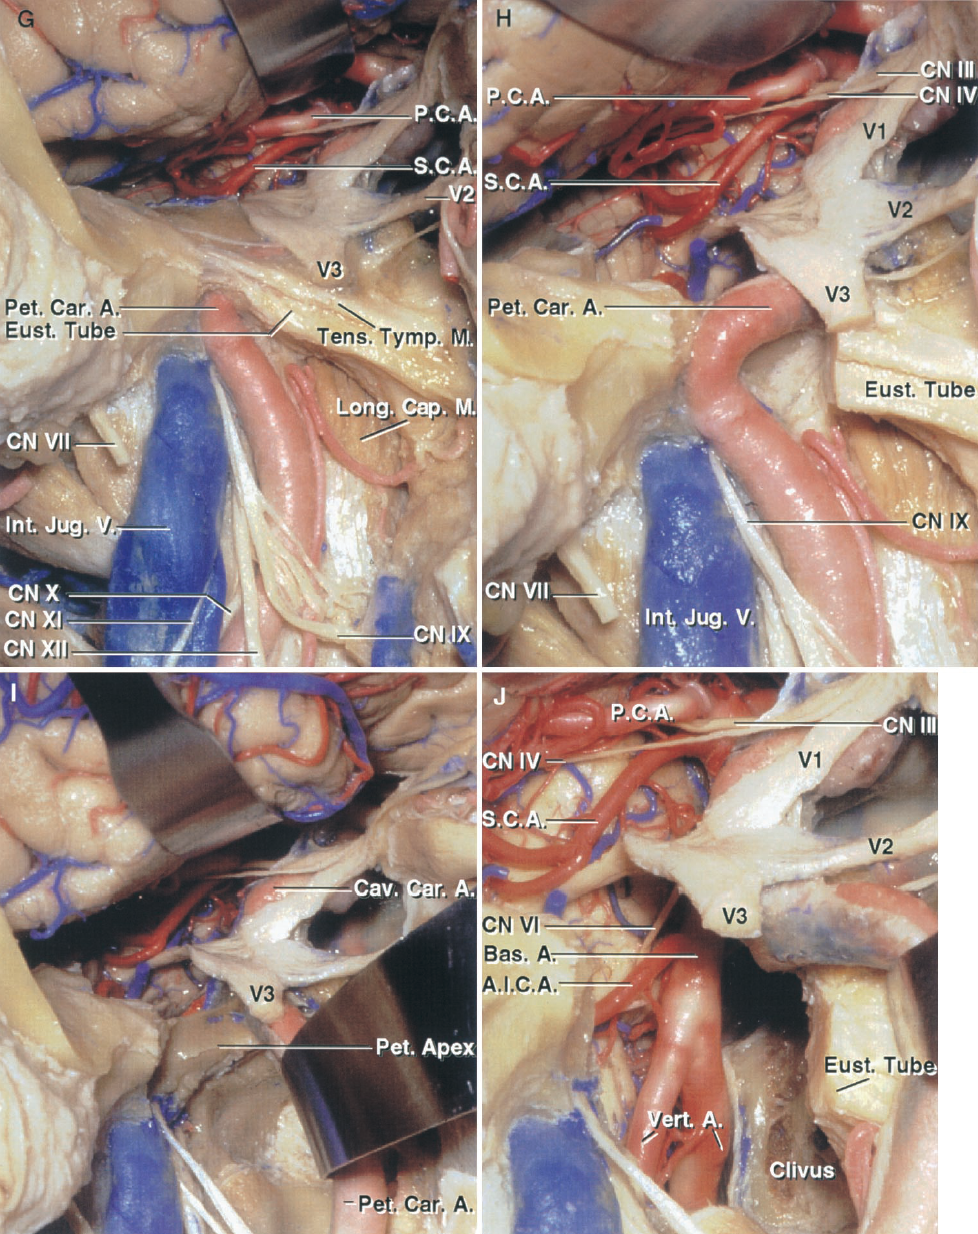 FIGURE 8.10. G–J. Preauricular subtemporal- infratemporal fossa approach. G, the floor of the middle fossa has been resected back to the level of the tensor tympani muscle and eustachian tube, and the petrous carotid artery. The nerves exiting the jugular foramen and hypoglossal canal pass laterally between the internal carotid artery and internal jugular vein to reach their end organs. H, the eustachian tube and tensor tympani have been resected and the bone lateral to the foramen ovale removed. This exposes the full length of the petrous carotid. I, the petrous carotid has been reflected forward out of the carotid canal to expose the petrous apex medial to the jugular foramen and lateral wall of the clivus. J, the petrous apex and adjacent part of the clivus medial to the jugular foramen and cochlea have been removed and the dura opened to expose the junction of the vertebral and basilar arteries and the origin of the AICA.